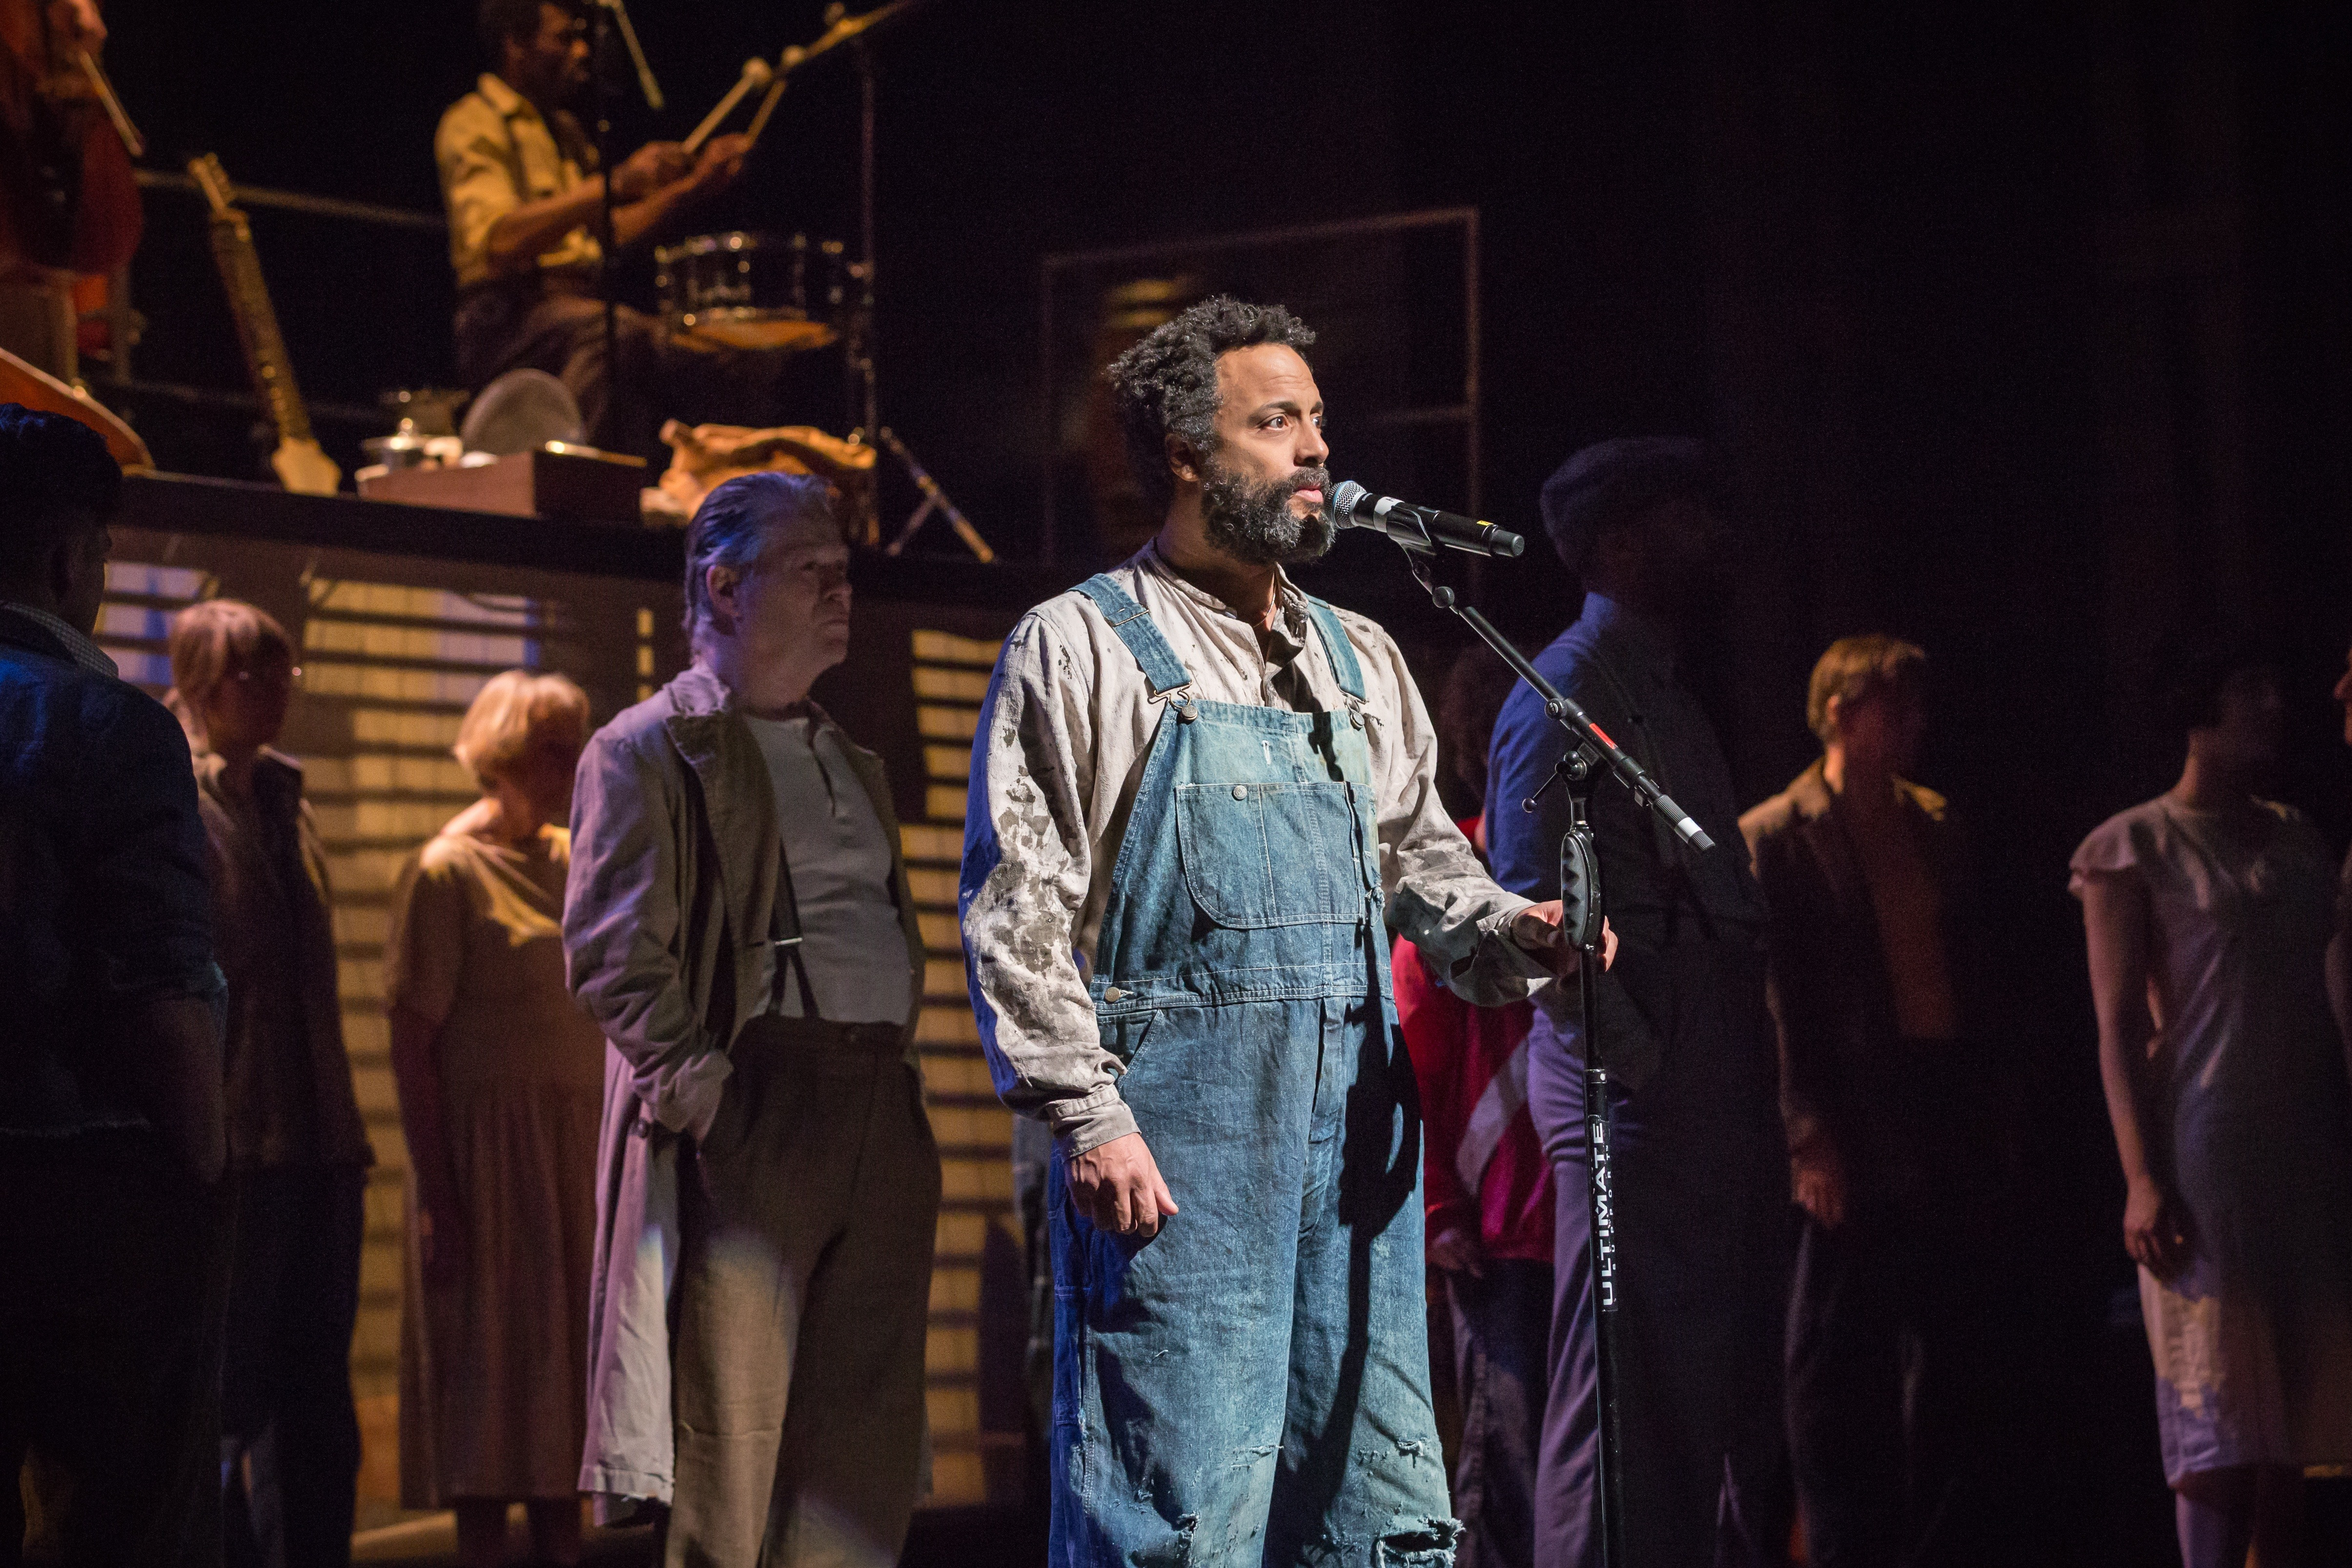 John Steinbeck's classic The Grapes of Wrath comes to West Yorkshire Playhouse